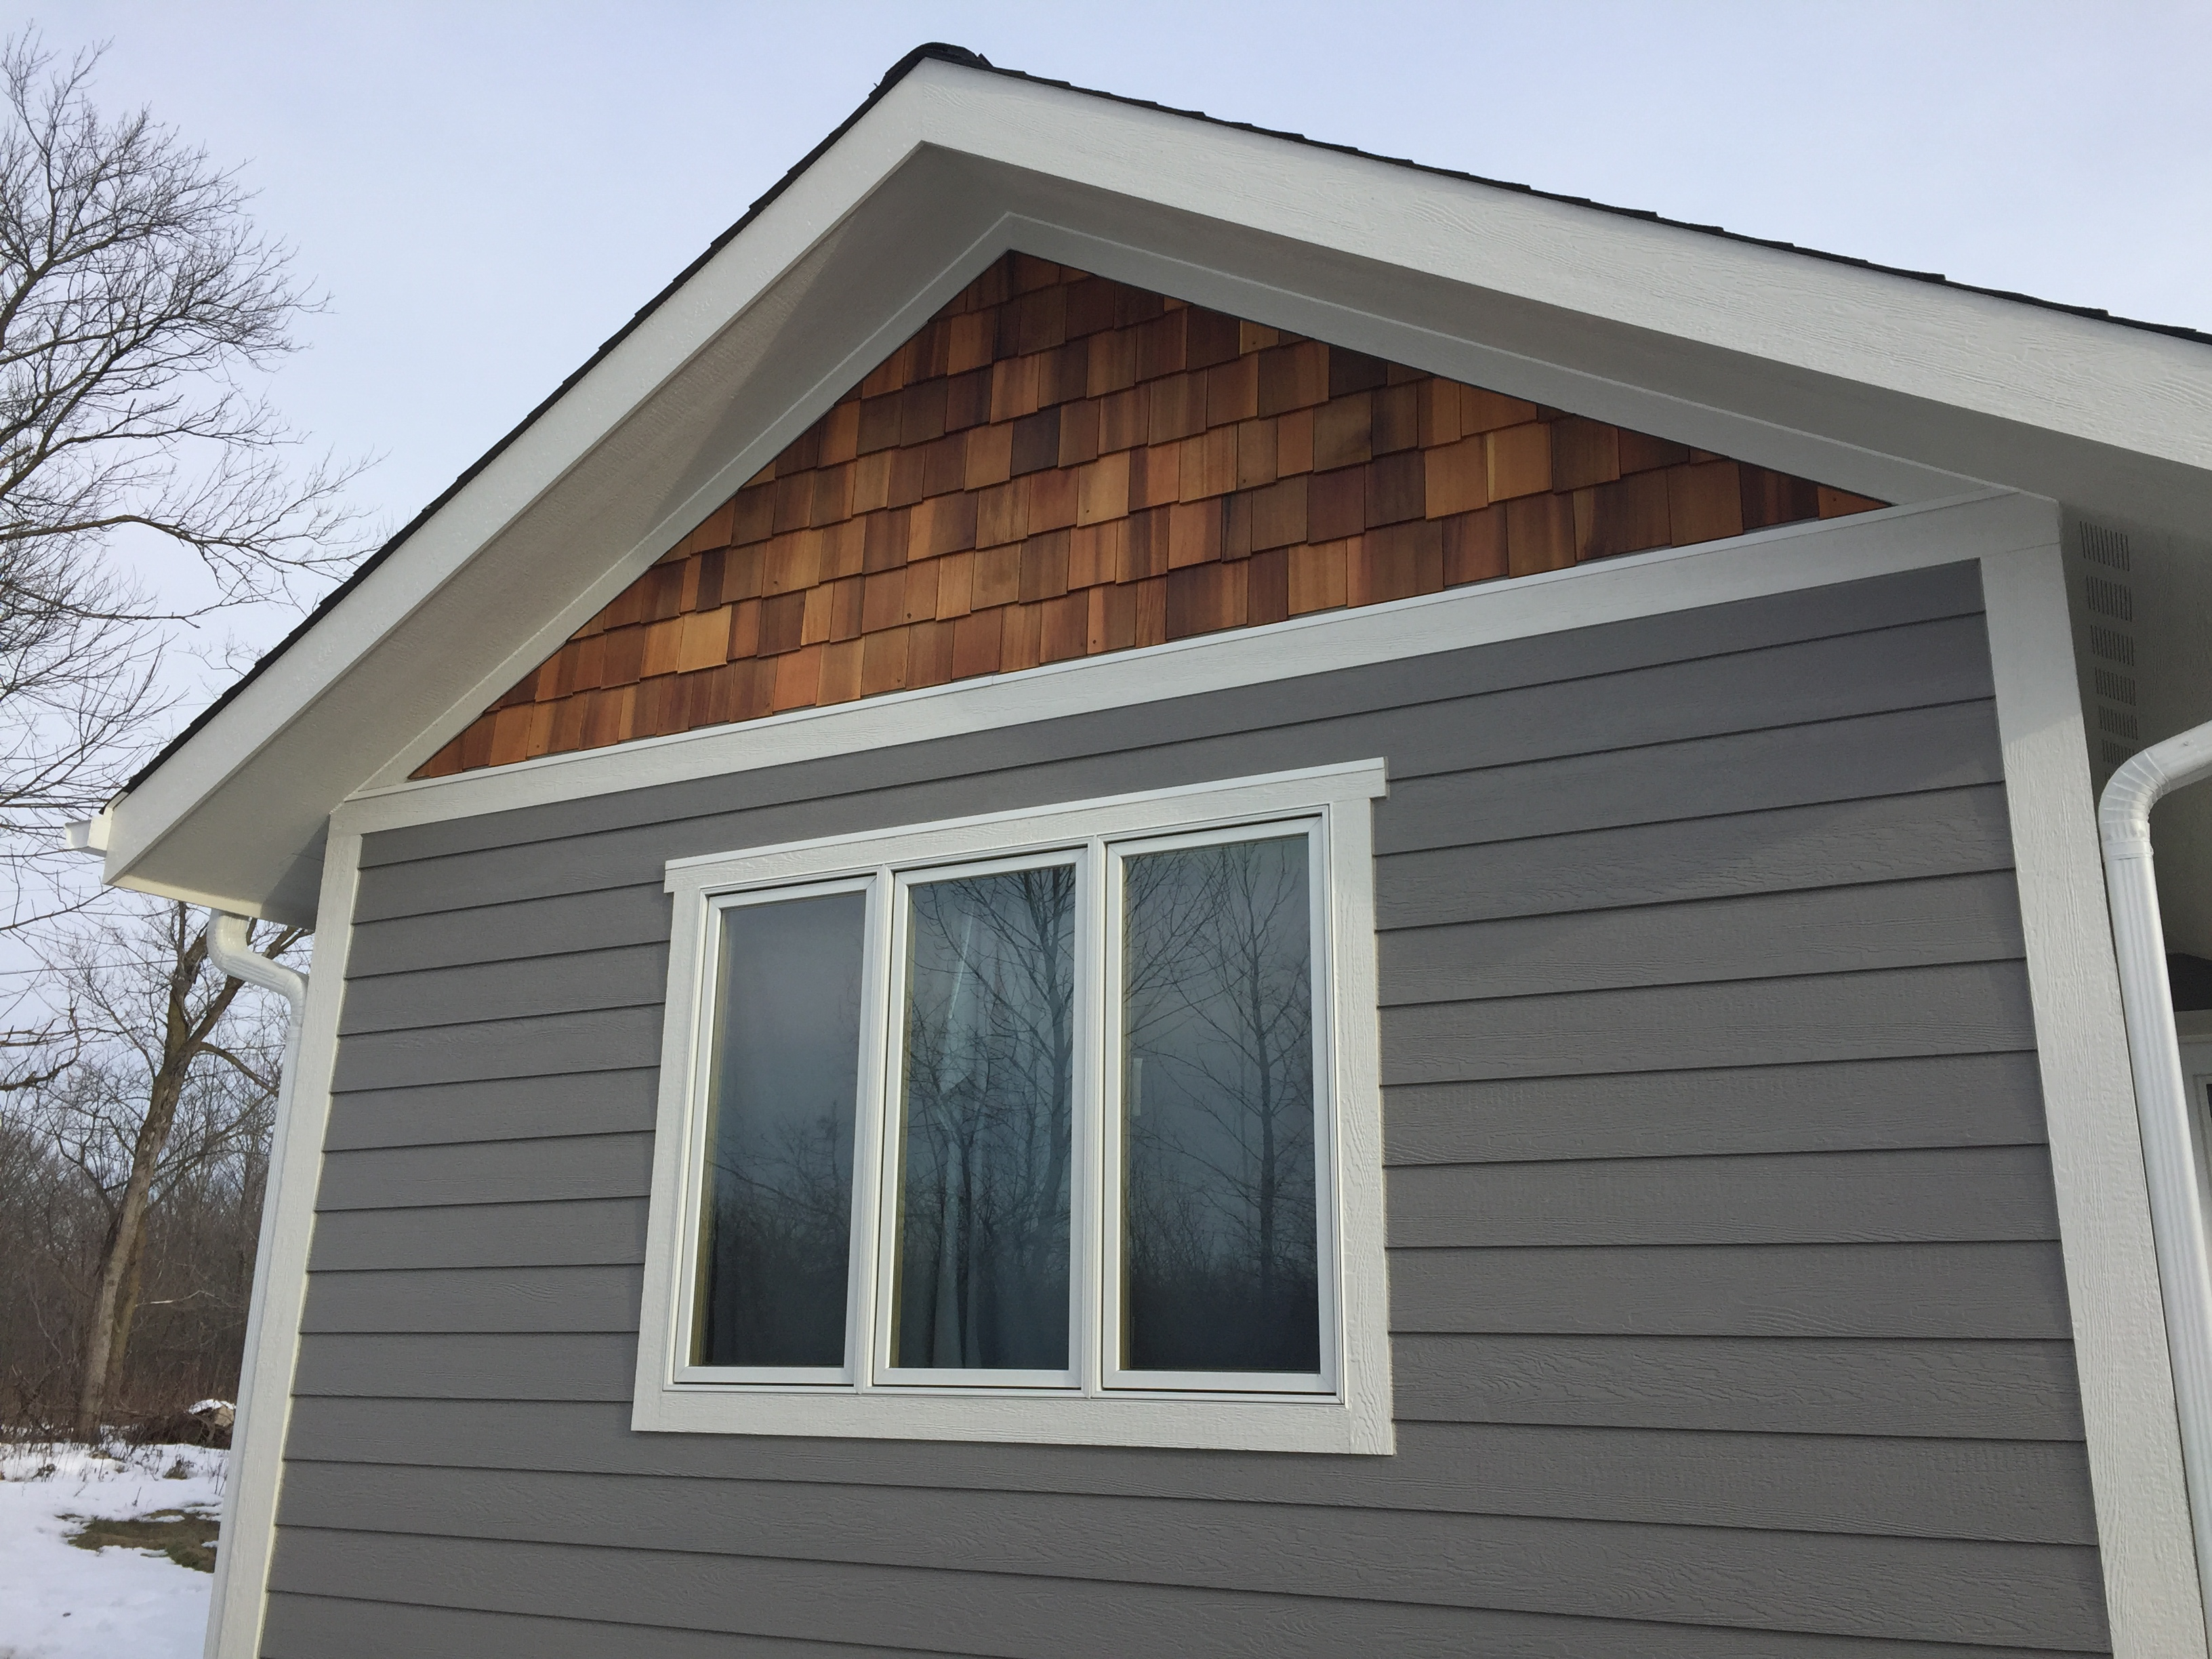 Pros cons of the most popular siding choices for your home for Fibre cement siding pros and cons